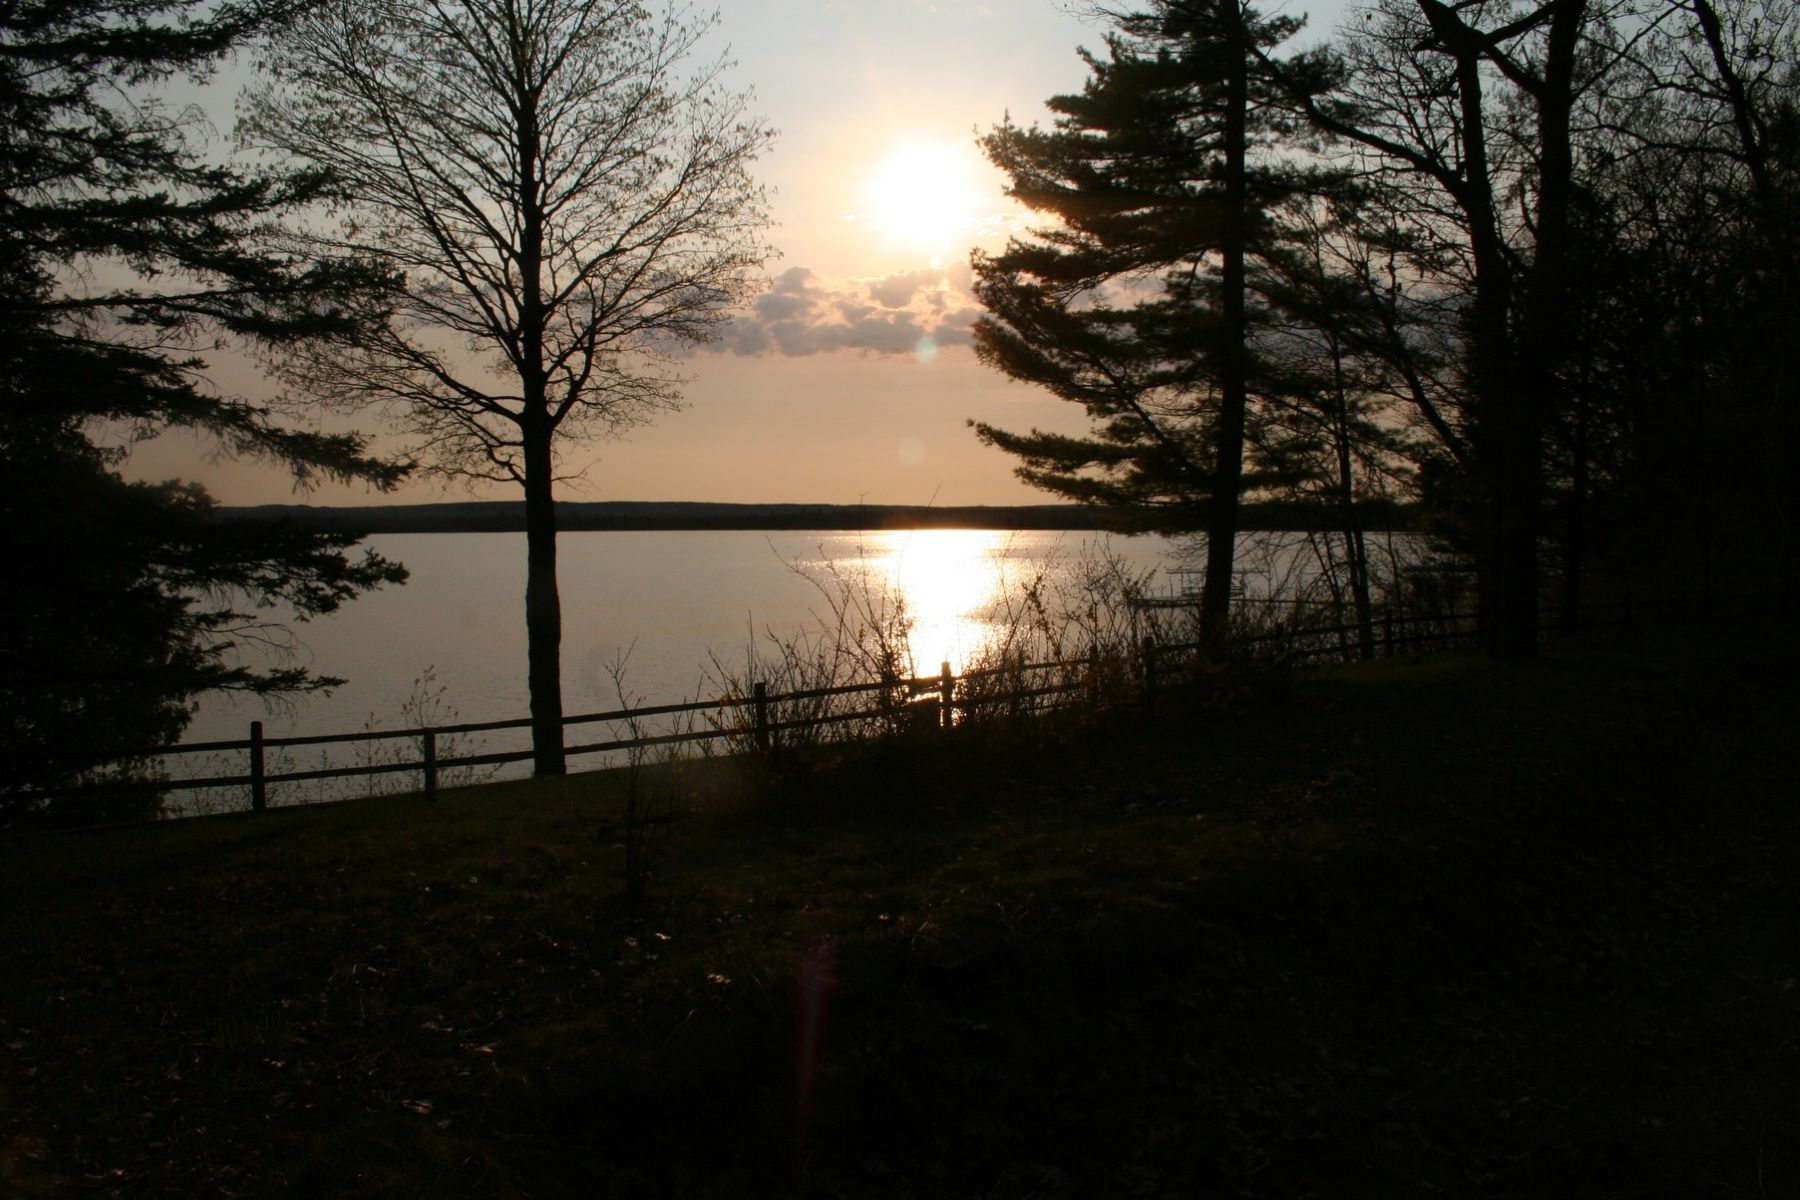 Land for Sale at Maple Bay on Burt Lake 1455 Festival Lane & 9933 Chickagami Trail Brutus, Michigan, 49712 United States